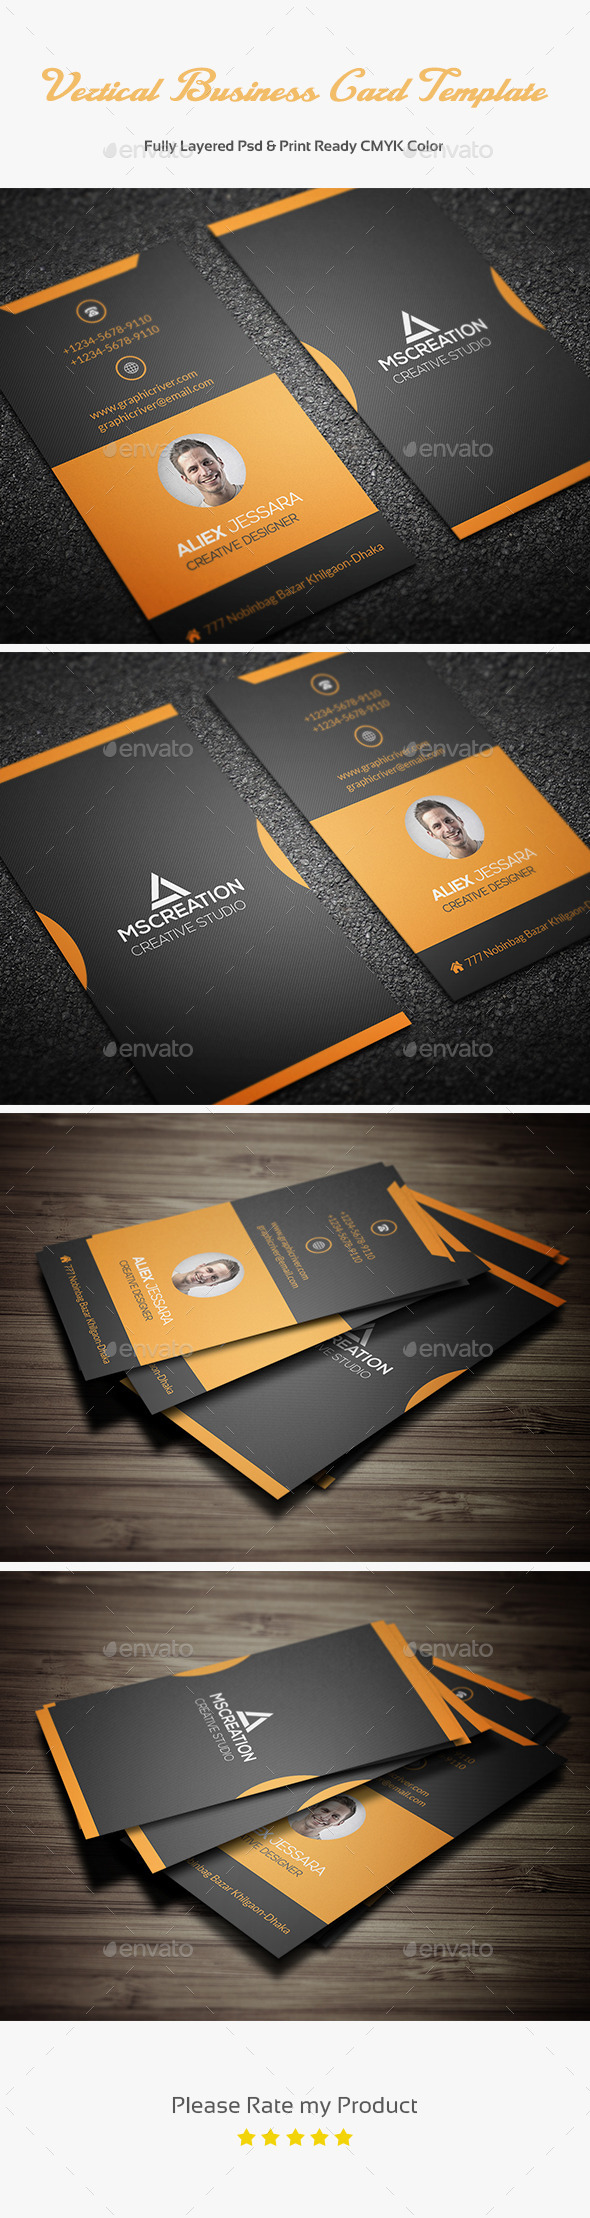 GraphicRiver Vertical Business Card Template 3 11561441